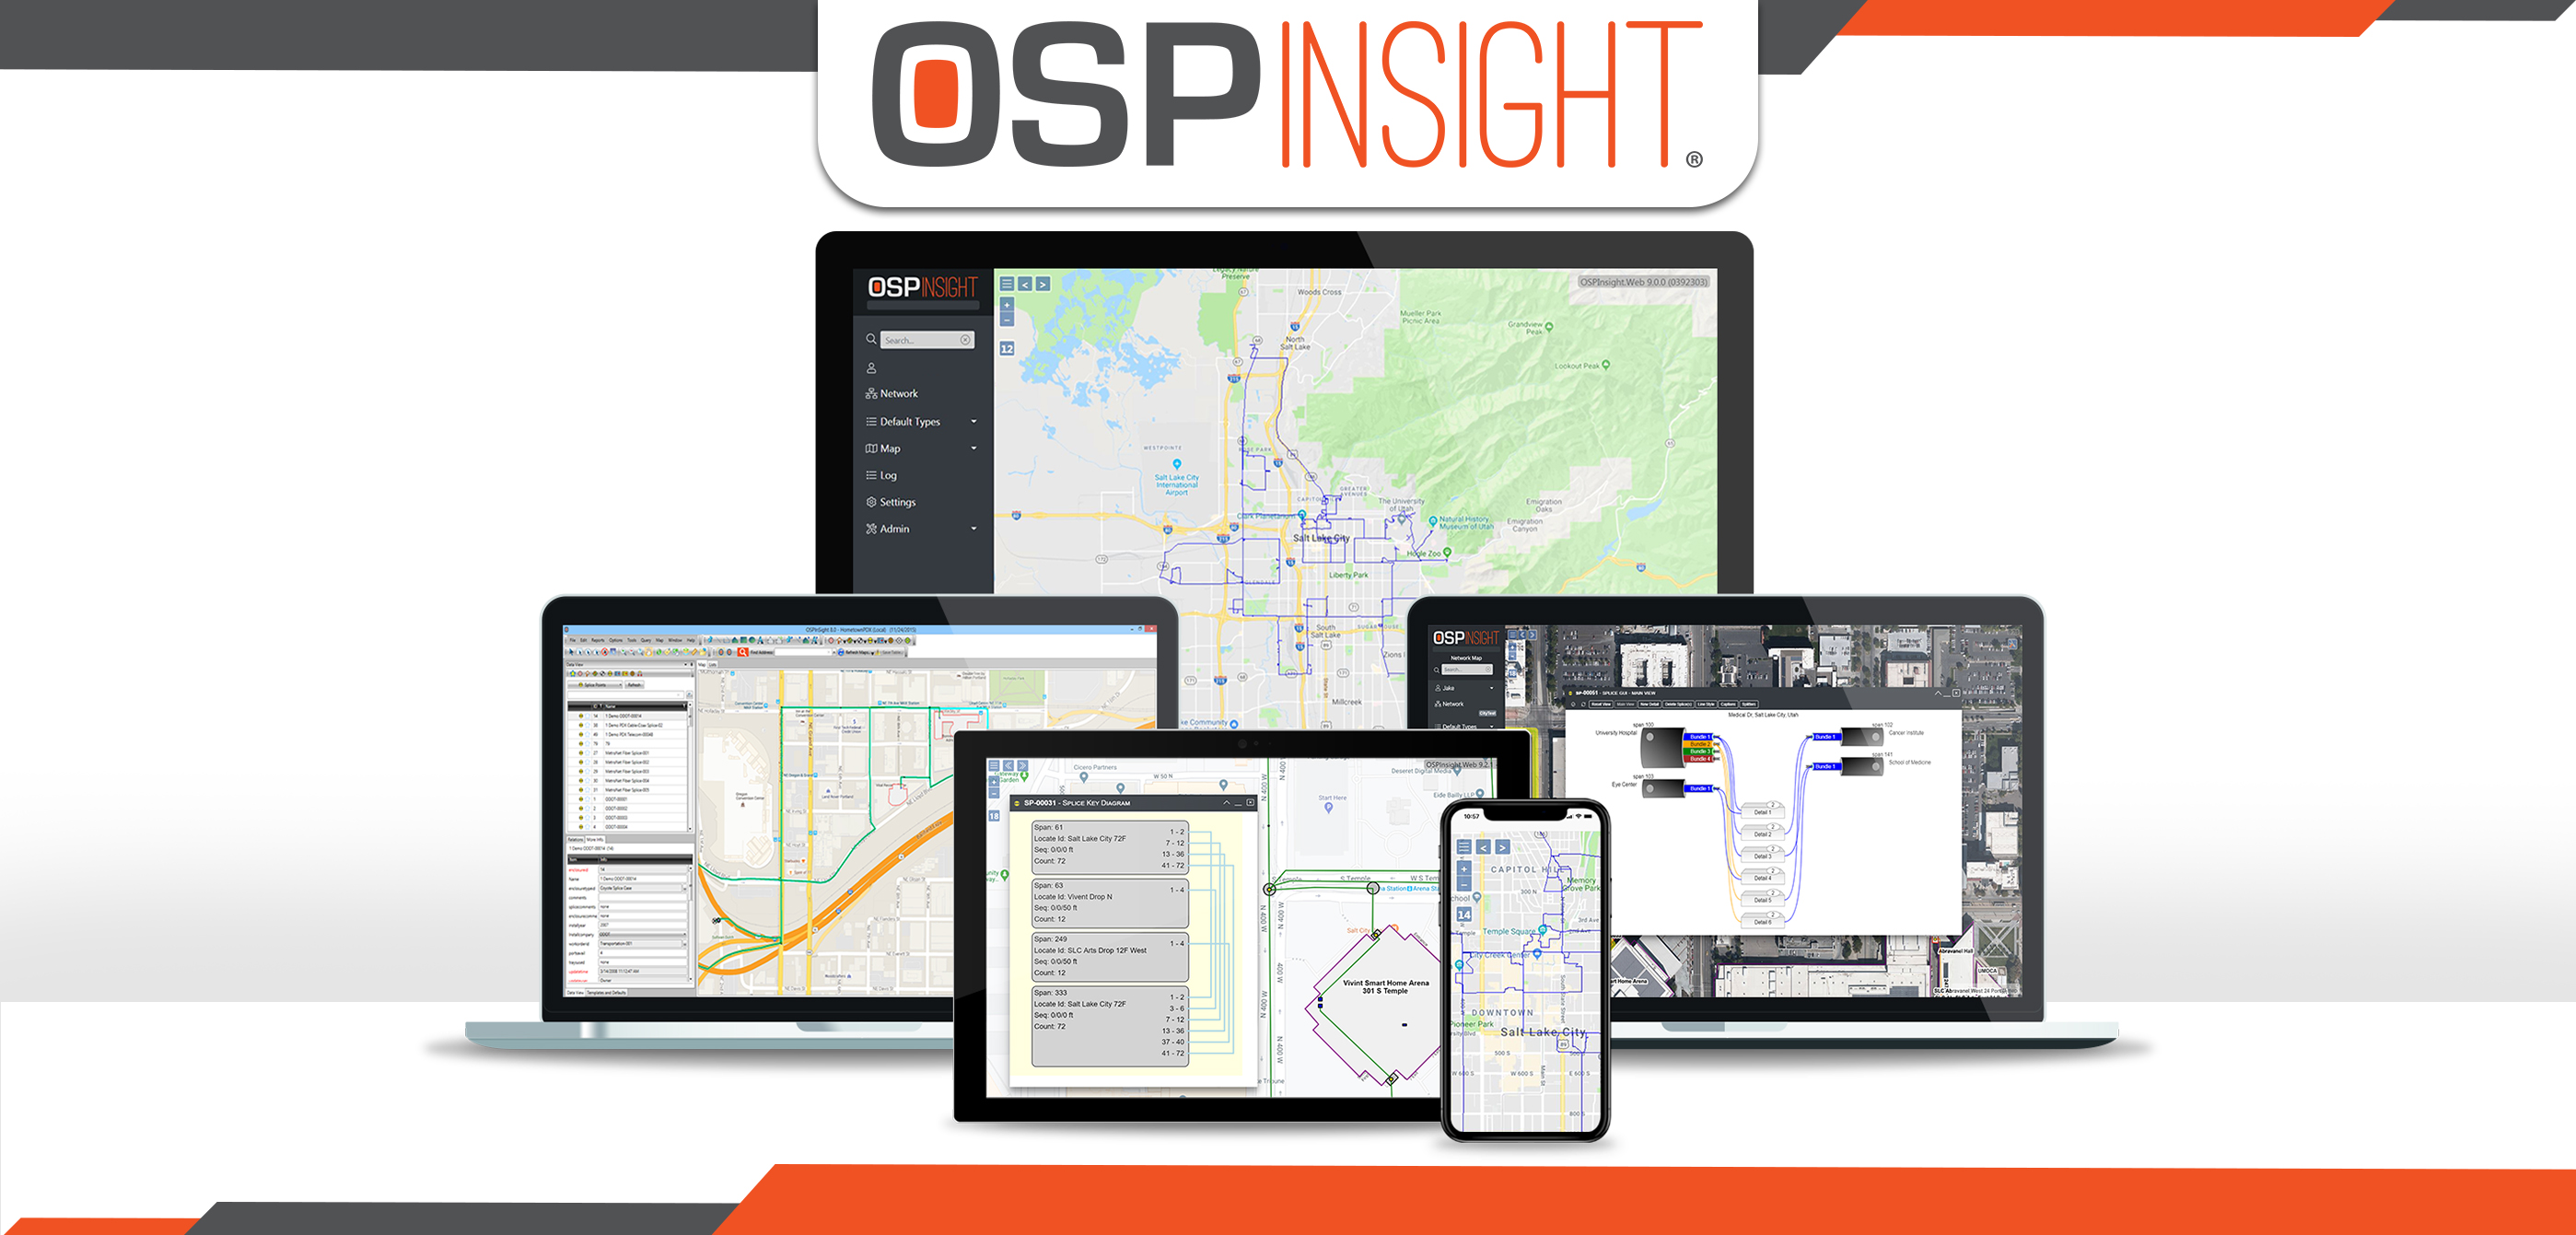 OSPInsight - Your Fiber Managment Tool (featured image) (02.02)